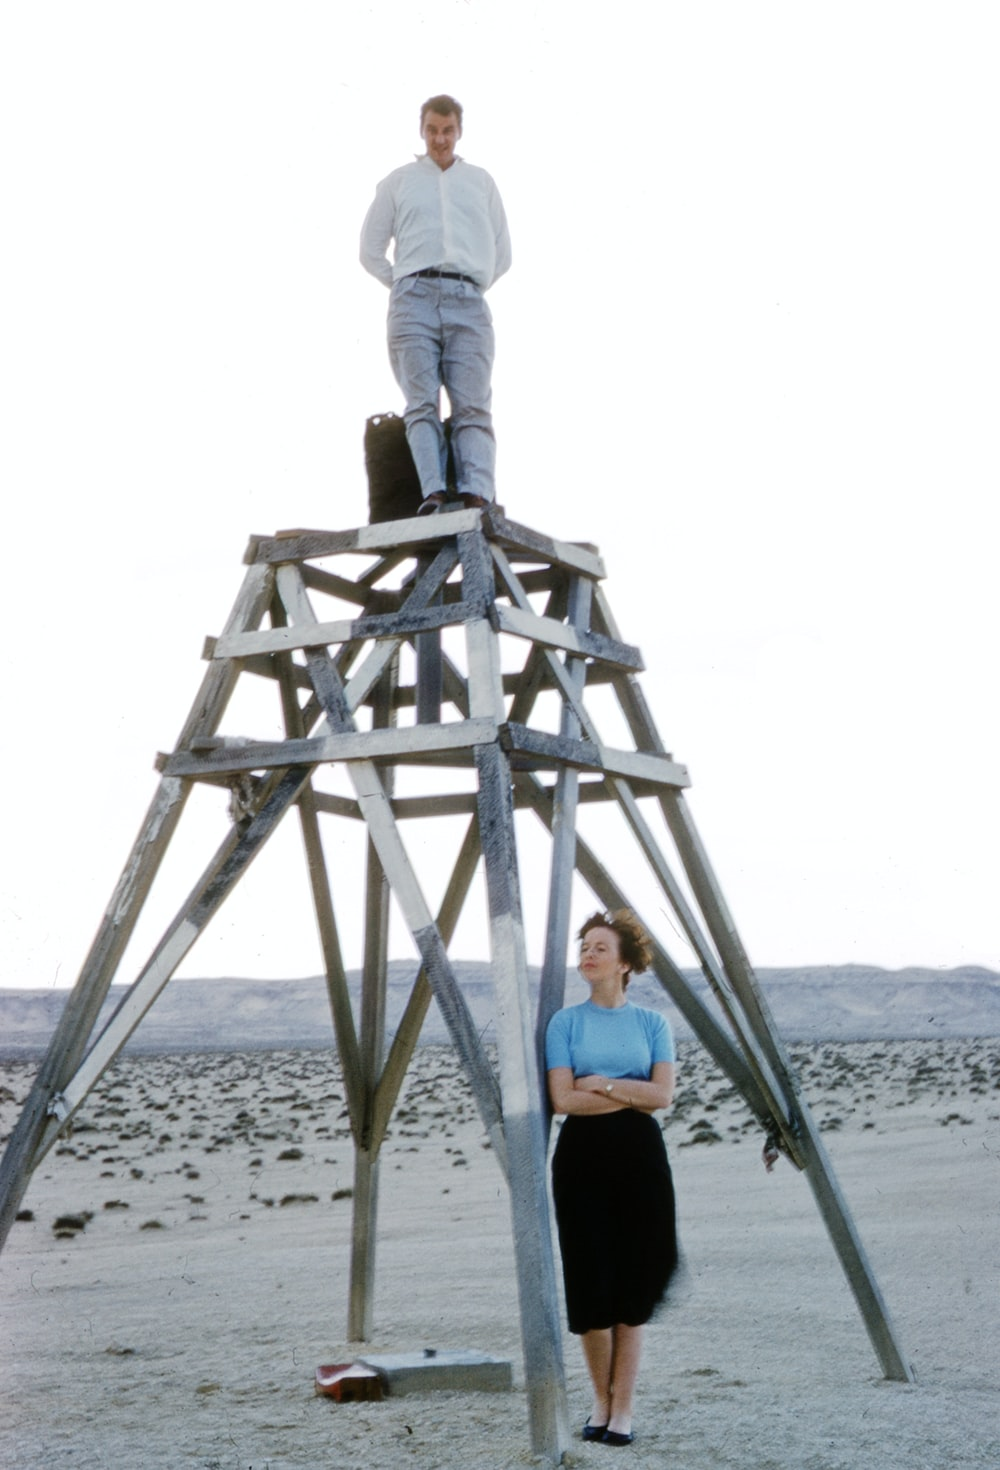 woman in blue shirt and gray pants standing on brown wooden ladder on beach during daytime